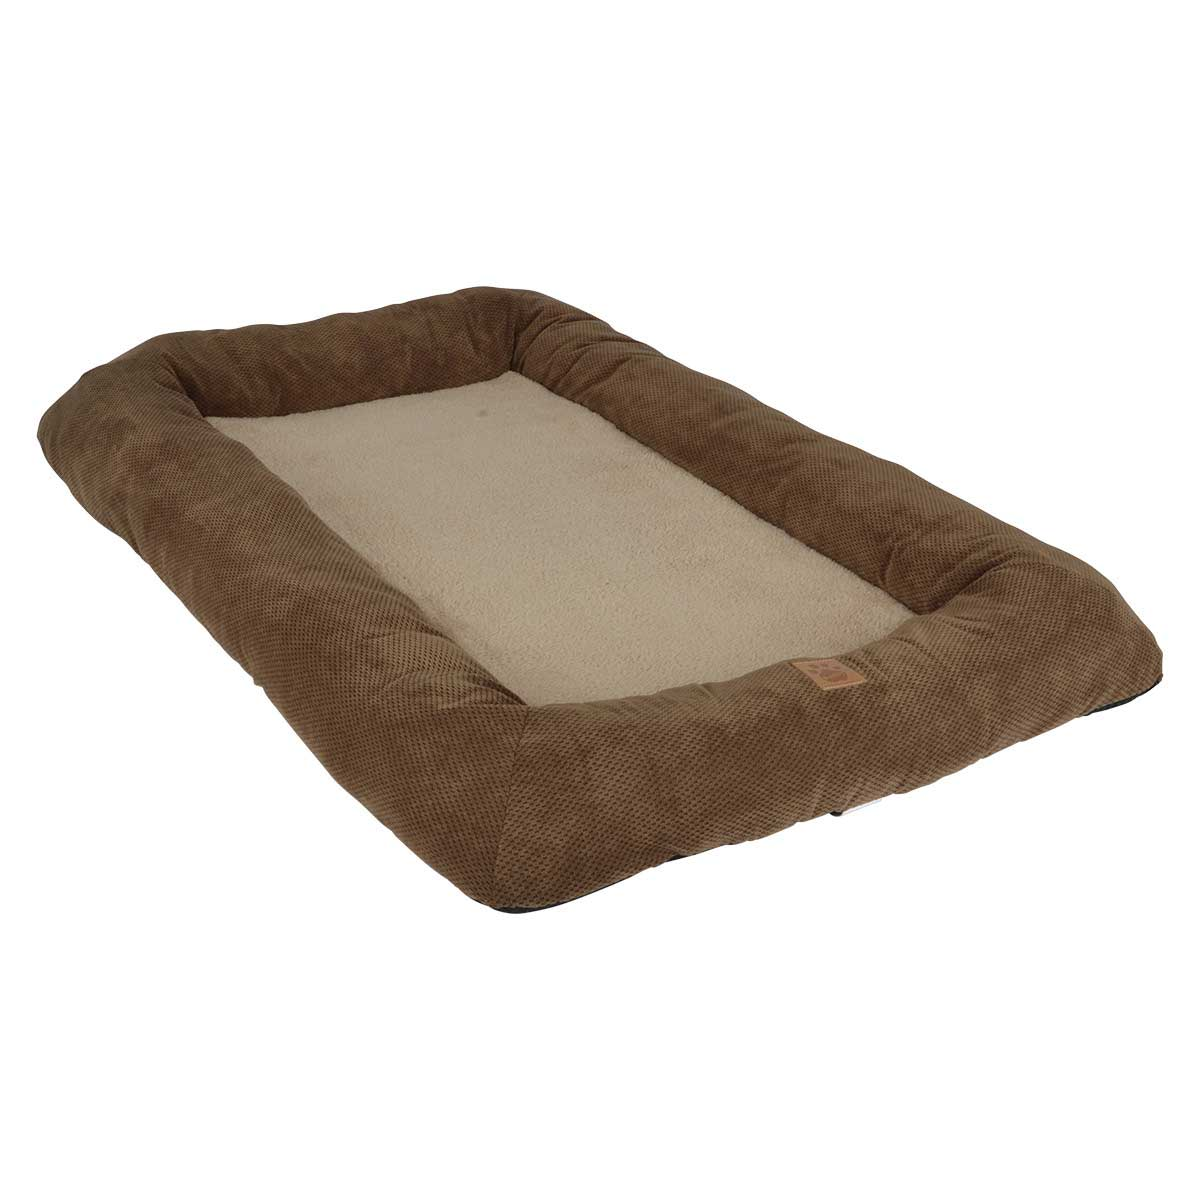 Snoozzy Low Bumper Tan and Brown Crate Mat - 51 inches by 33 inches